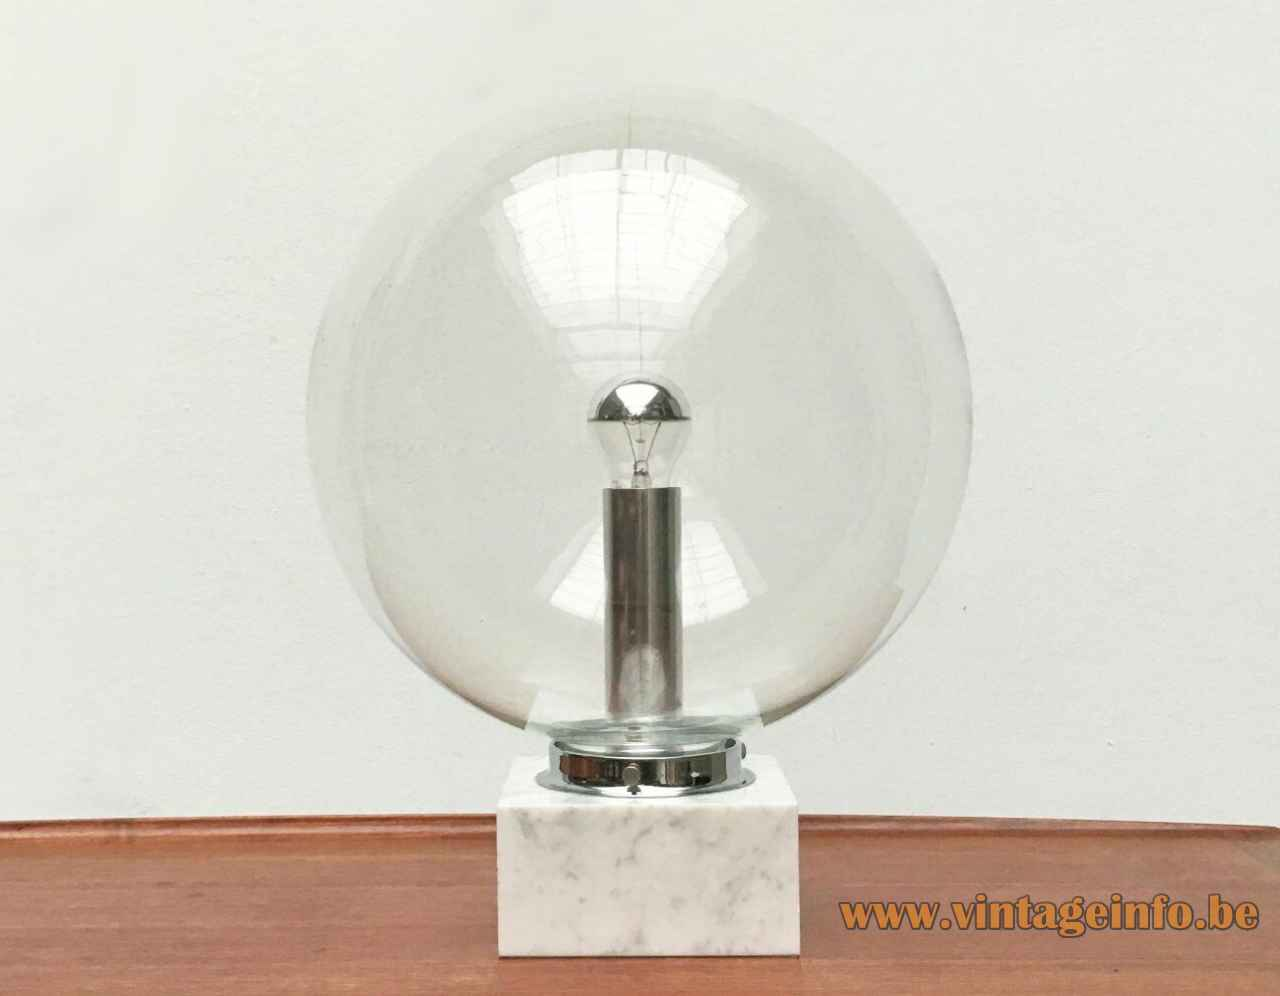 ERCO globe table lamp 3480 square marble base clear glass lampshade chrome tube 1970s Germany